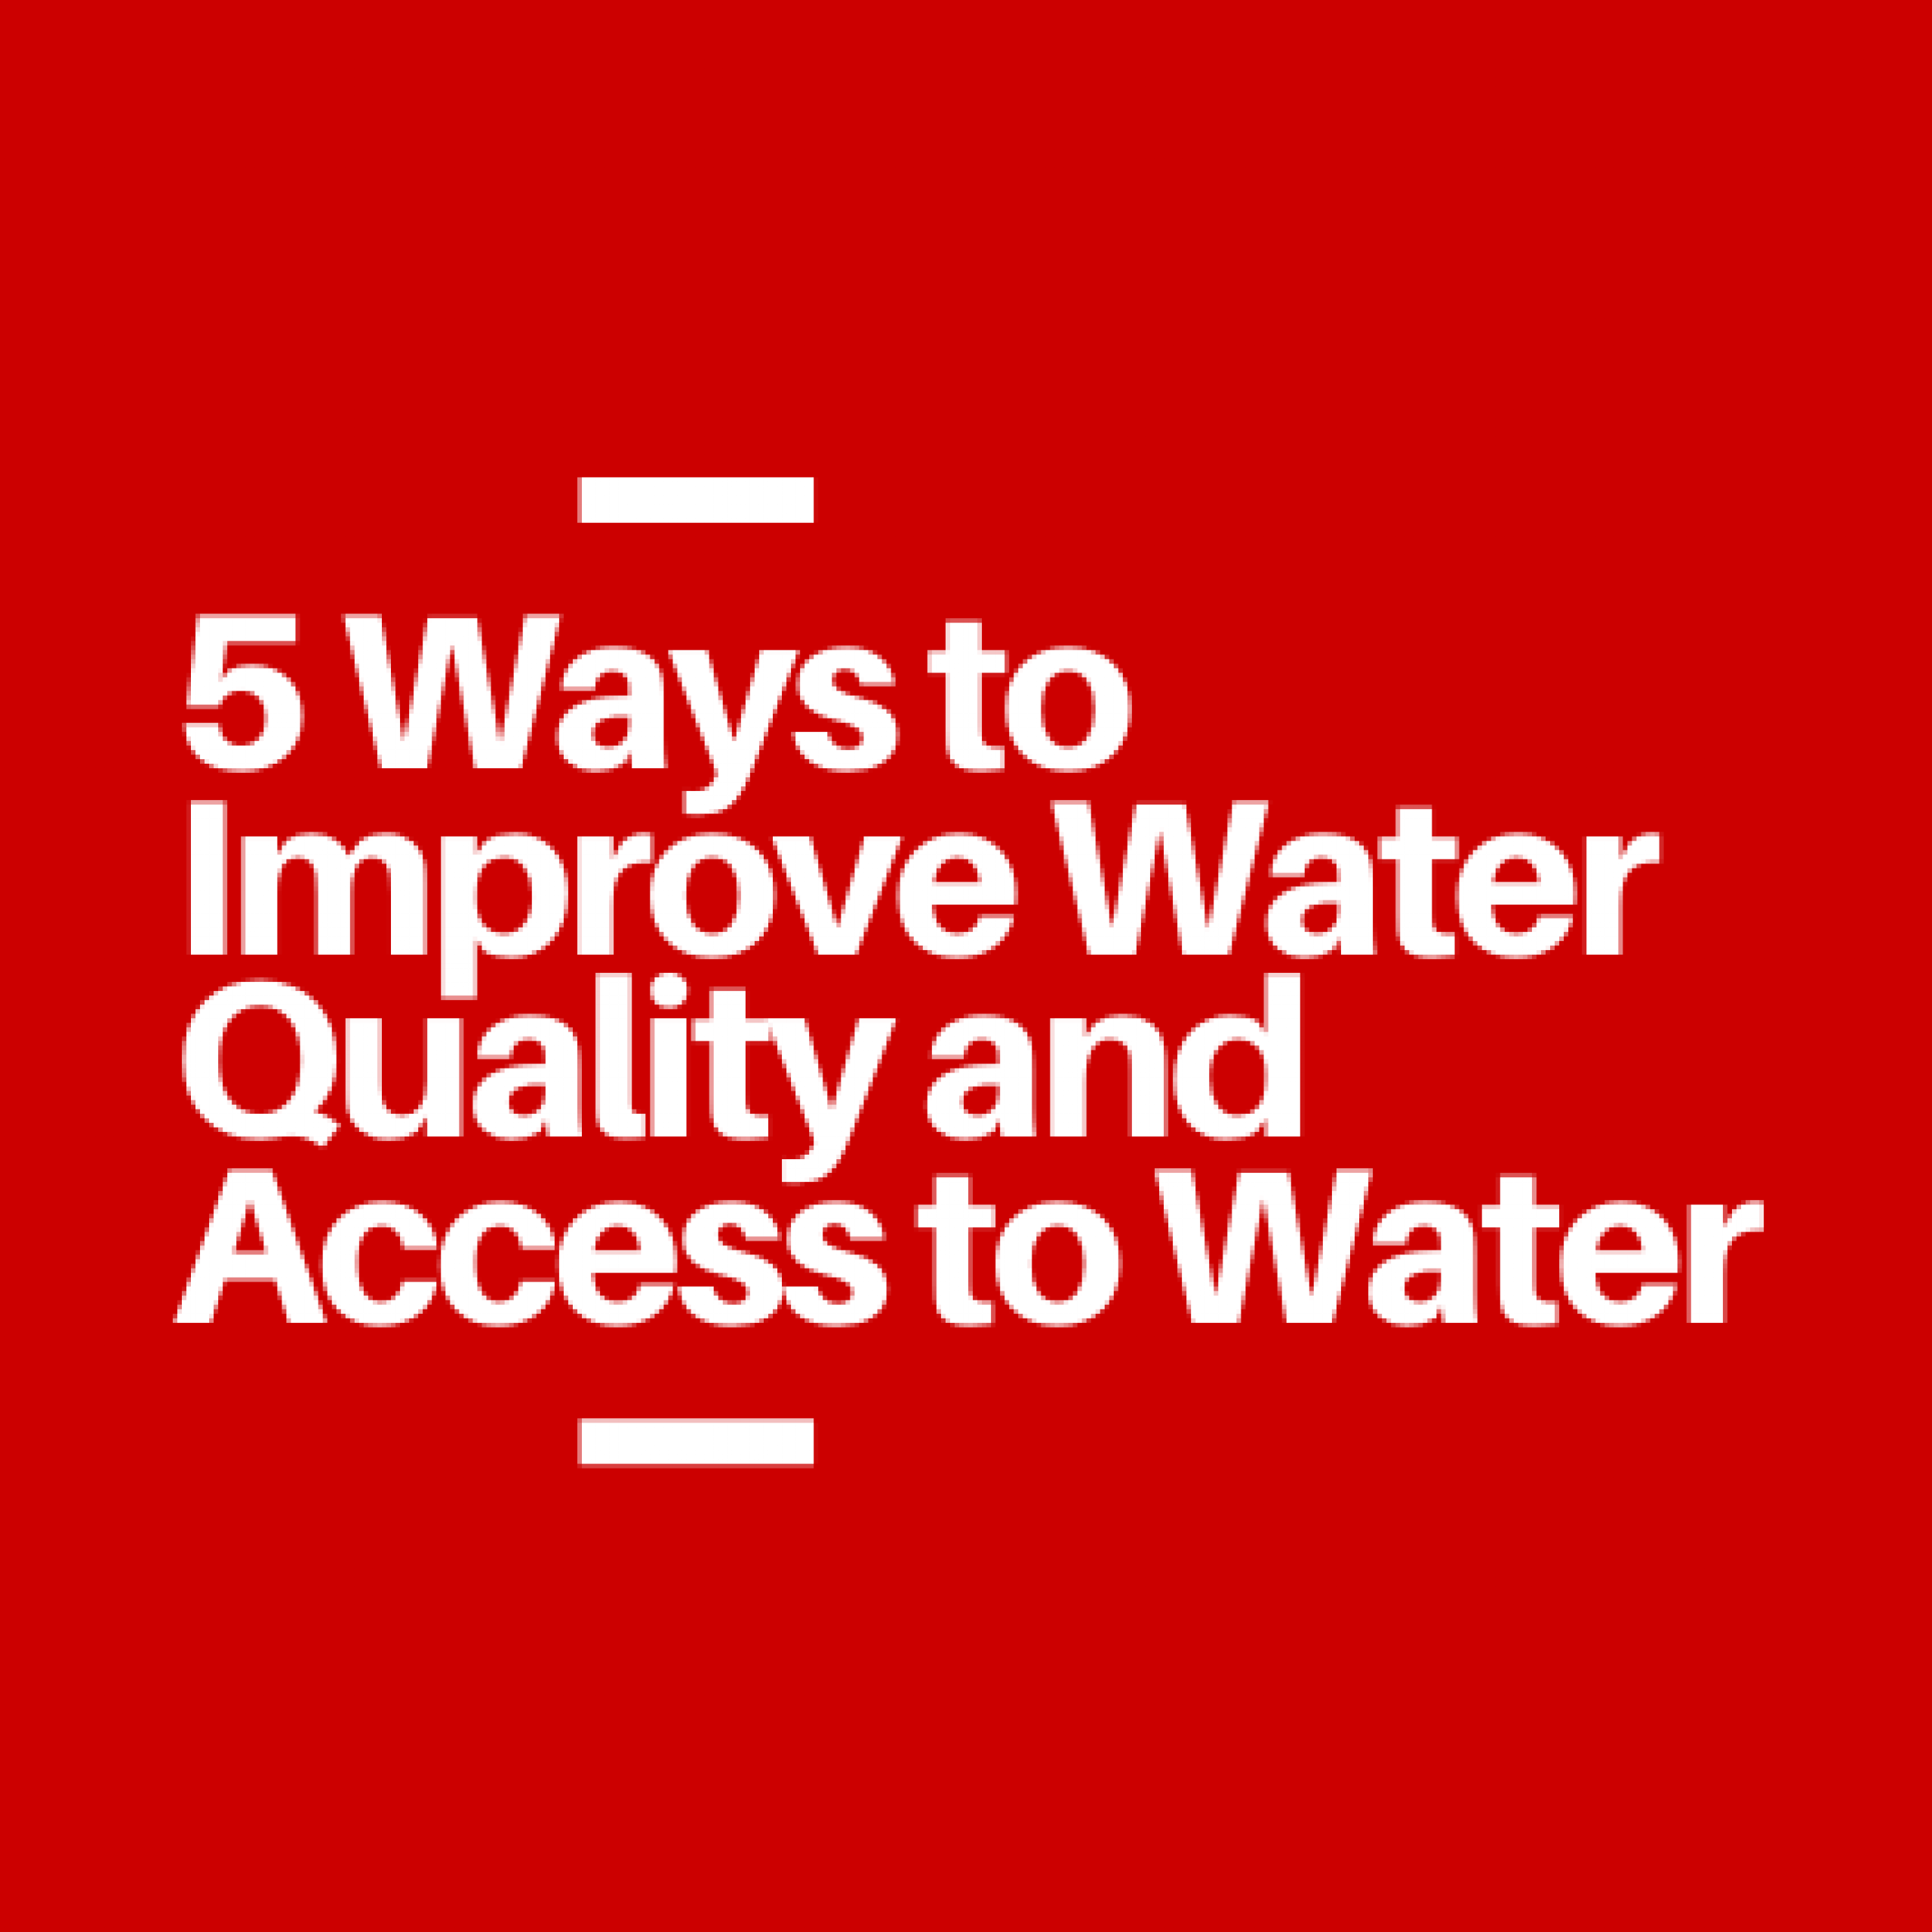 5 Ways to Improve Water Quality and Access to Water